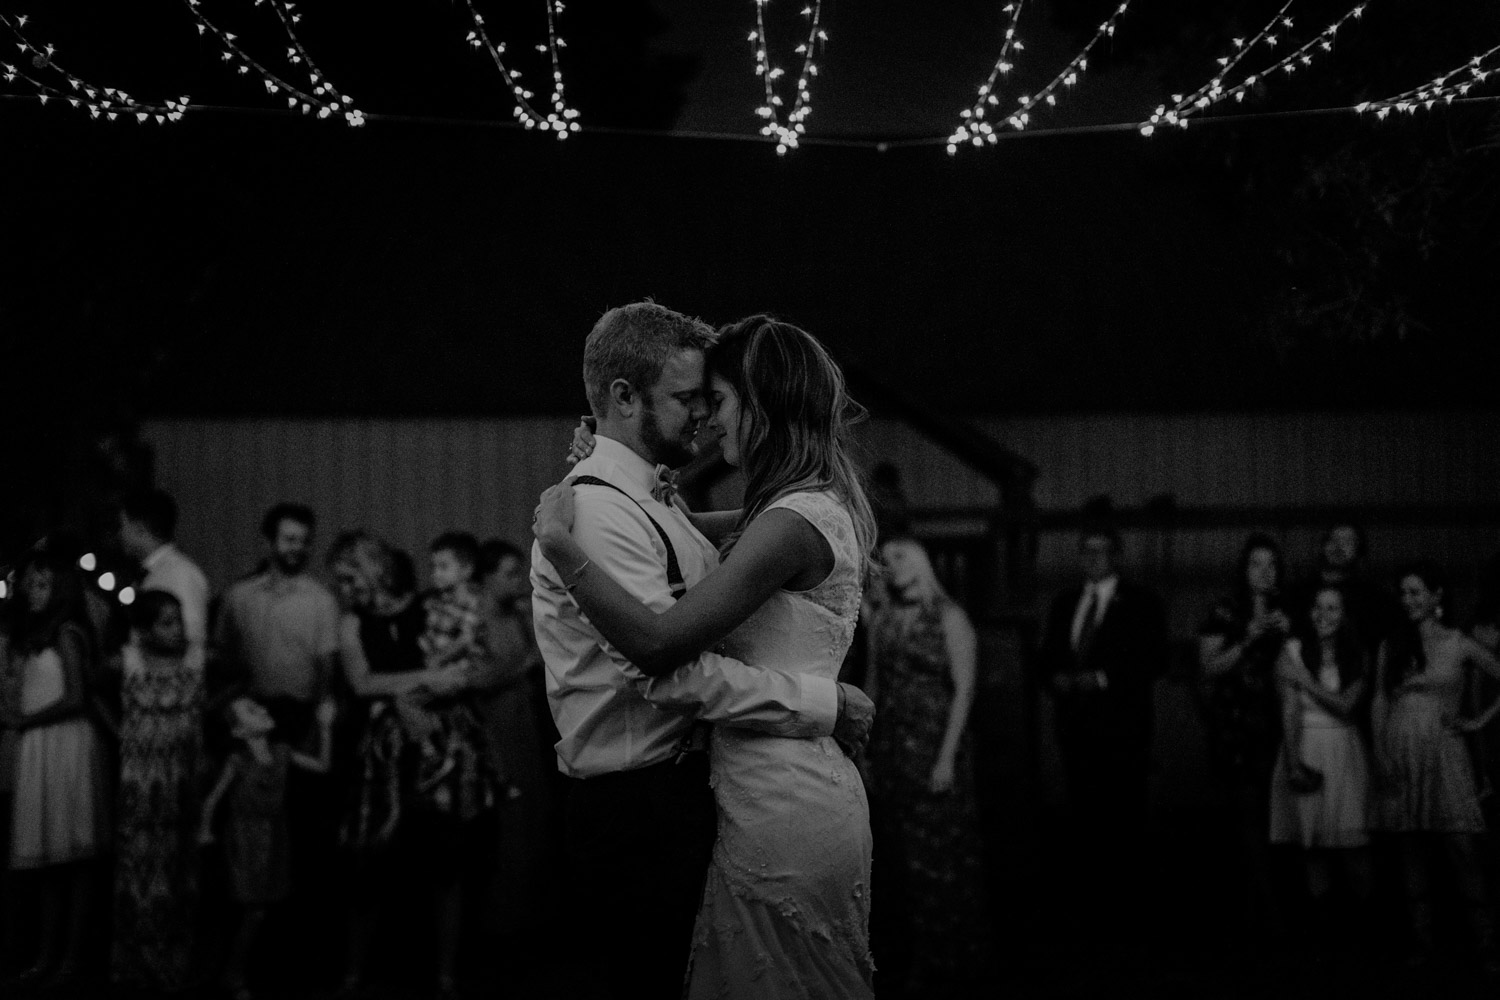 Swiss destination wedding photographer Colorado Denver Vintage Wedding barn wedding first dance